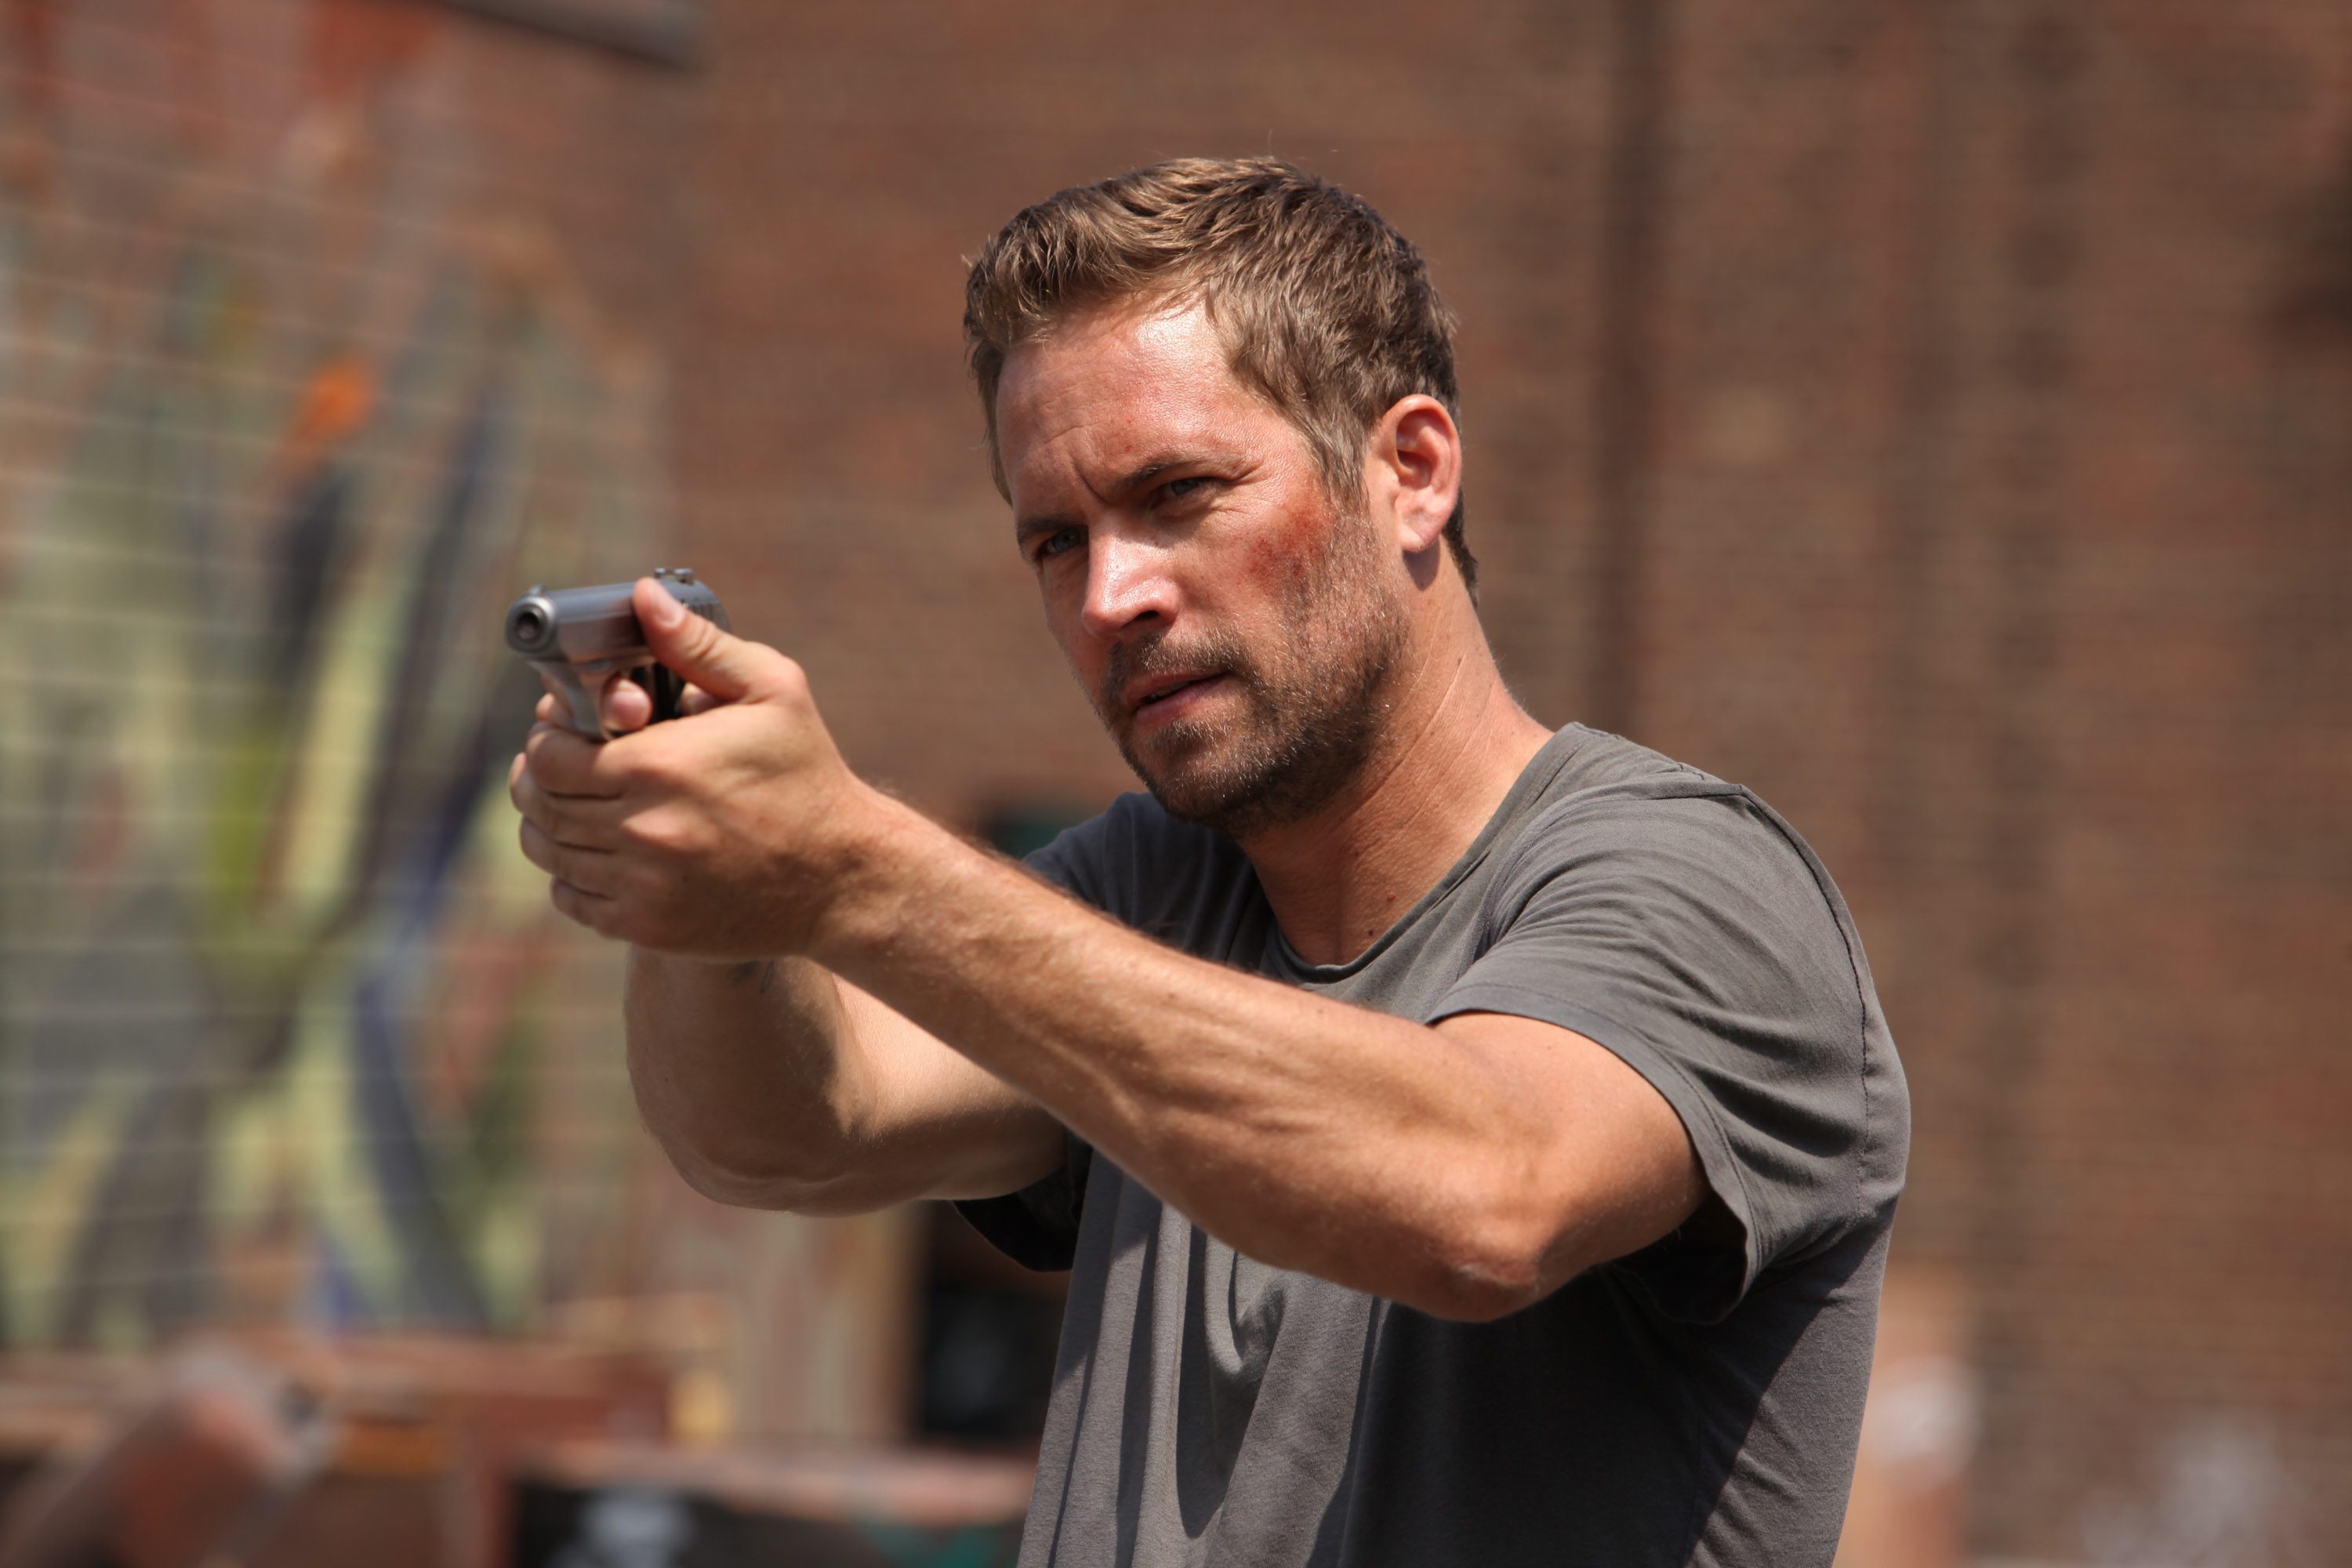 Paul Walker Dead at 40, 'Fast & Furious 7' Production Put on Hold